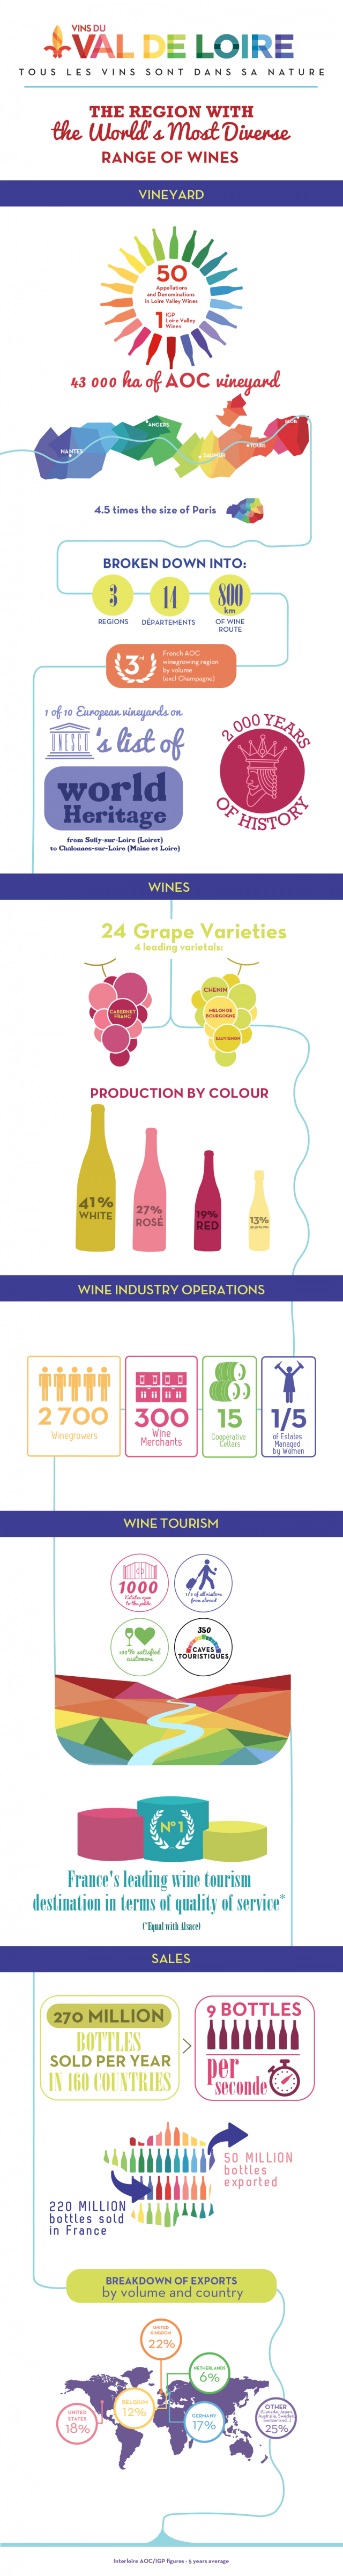 Loire Valley Wine Key Figures